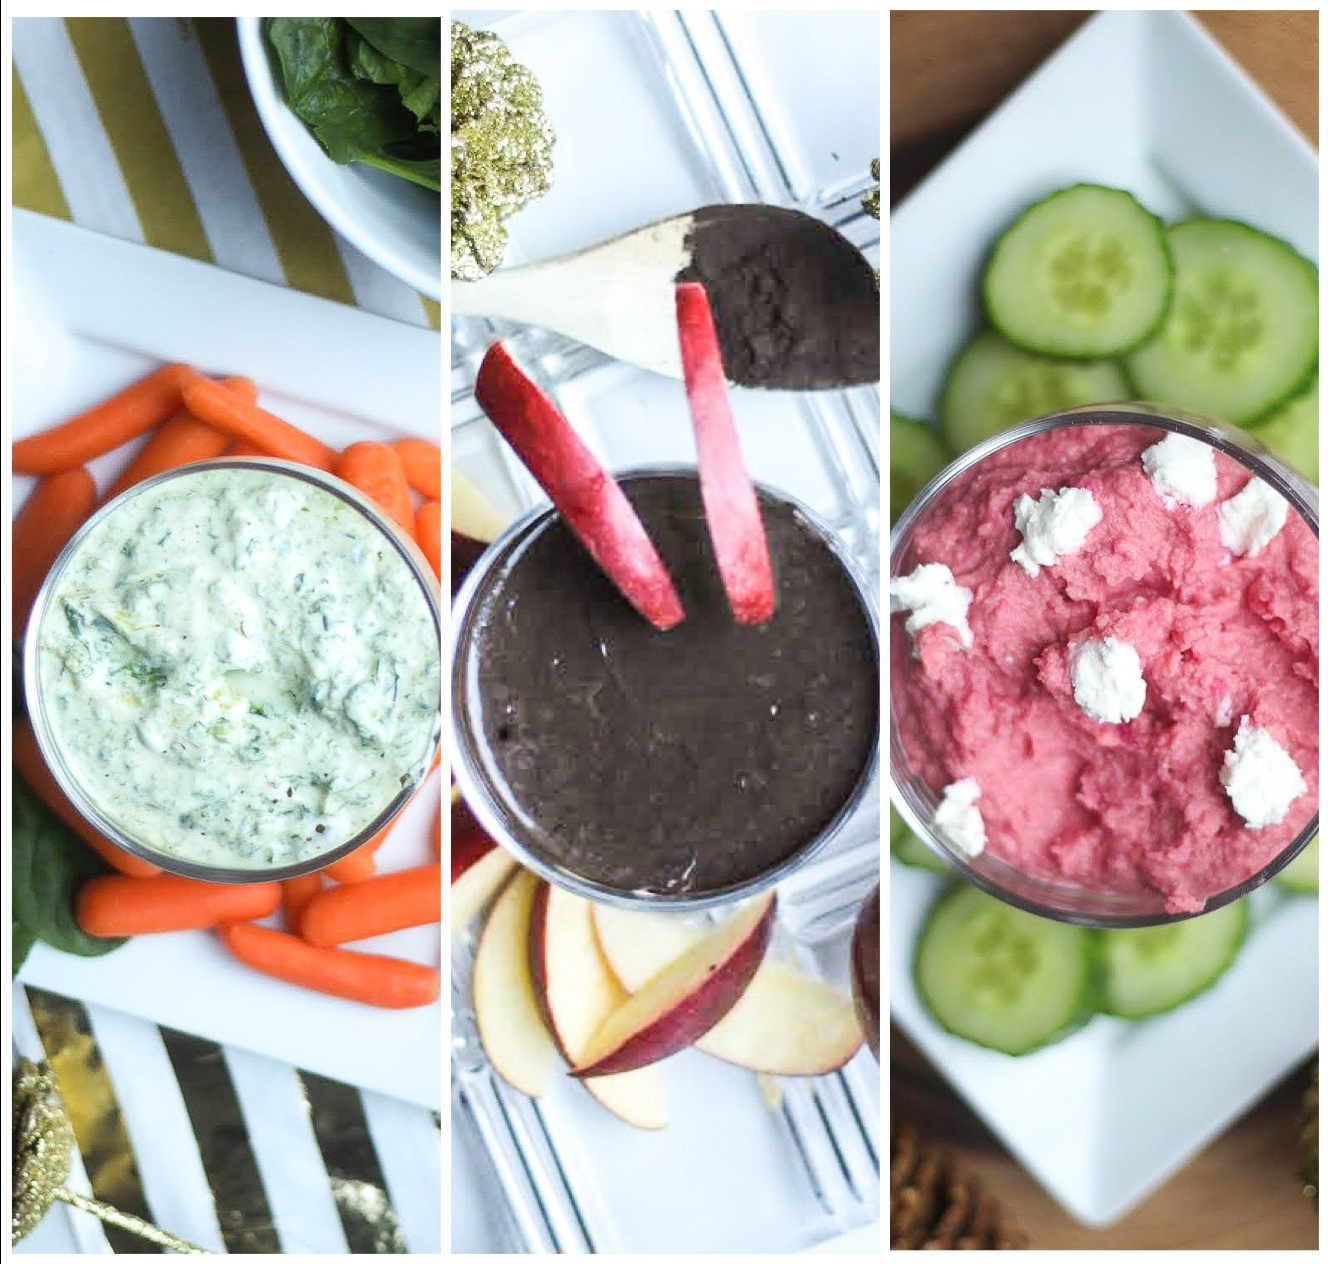 3 Minute Healthy Dips – 3 Ways